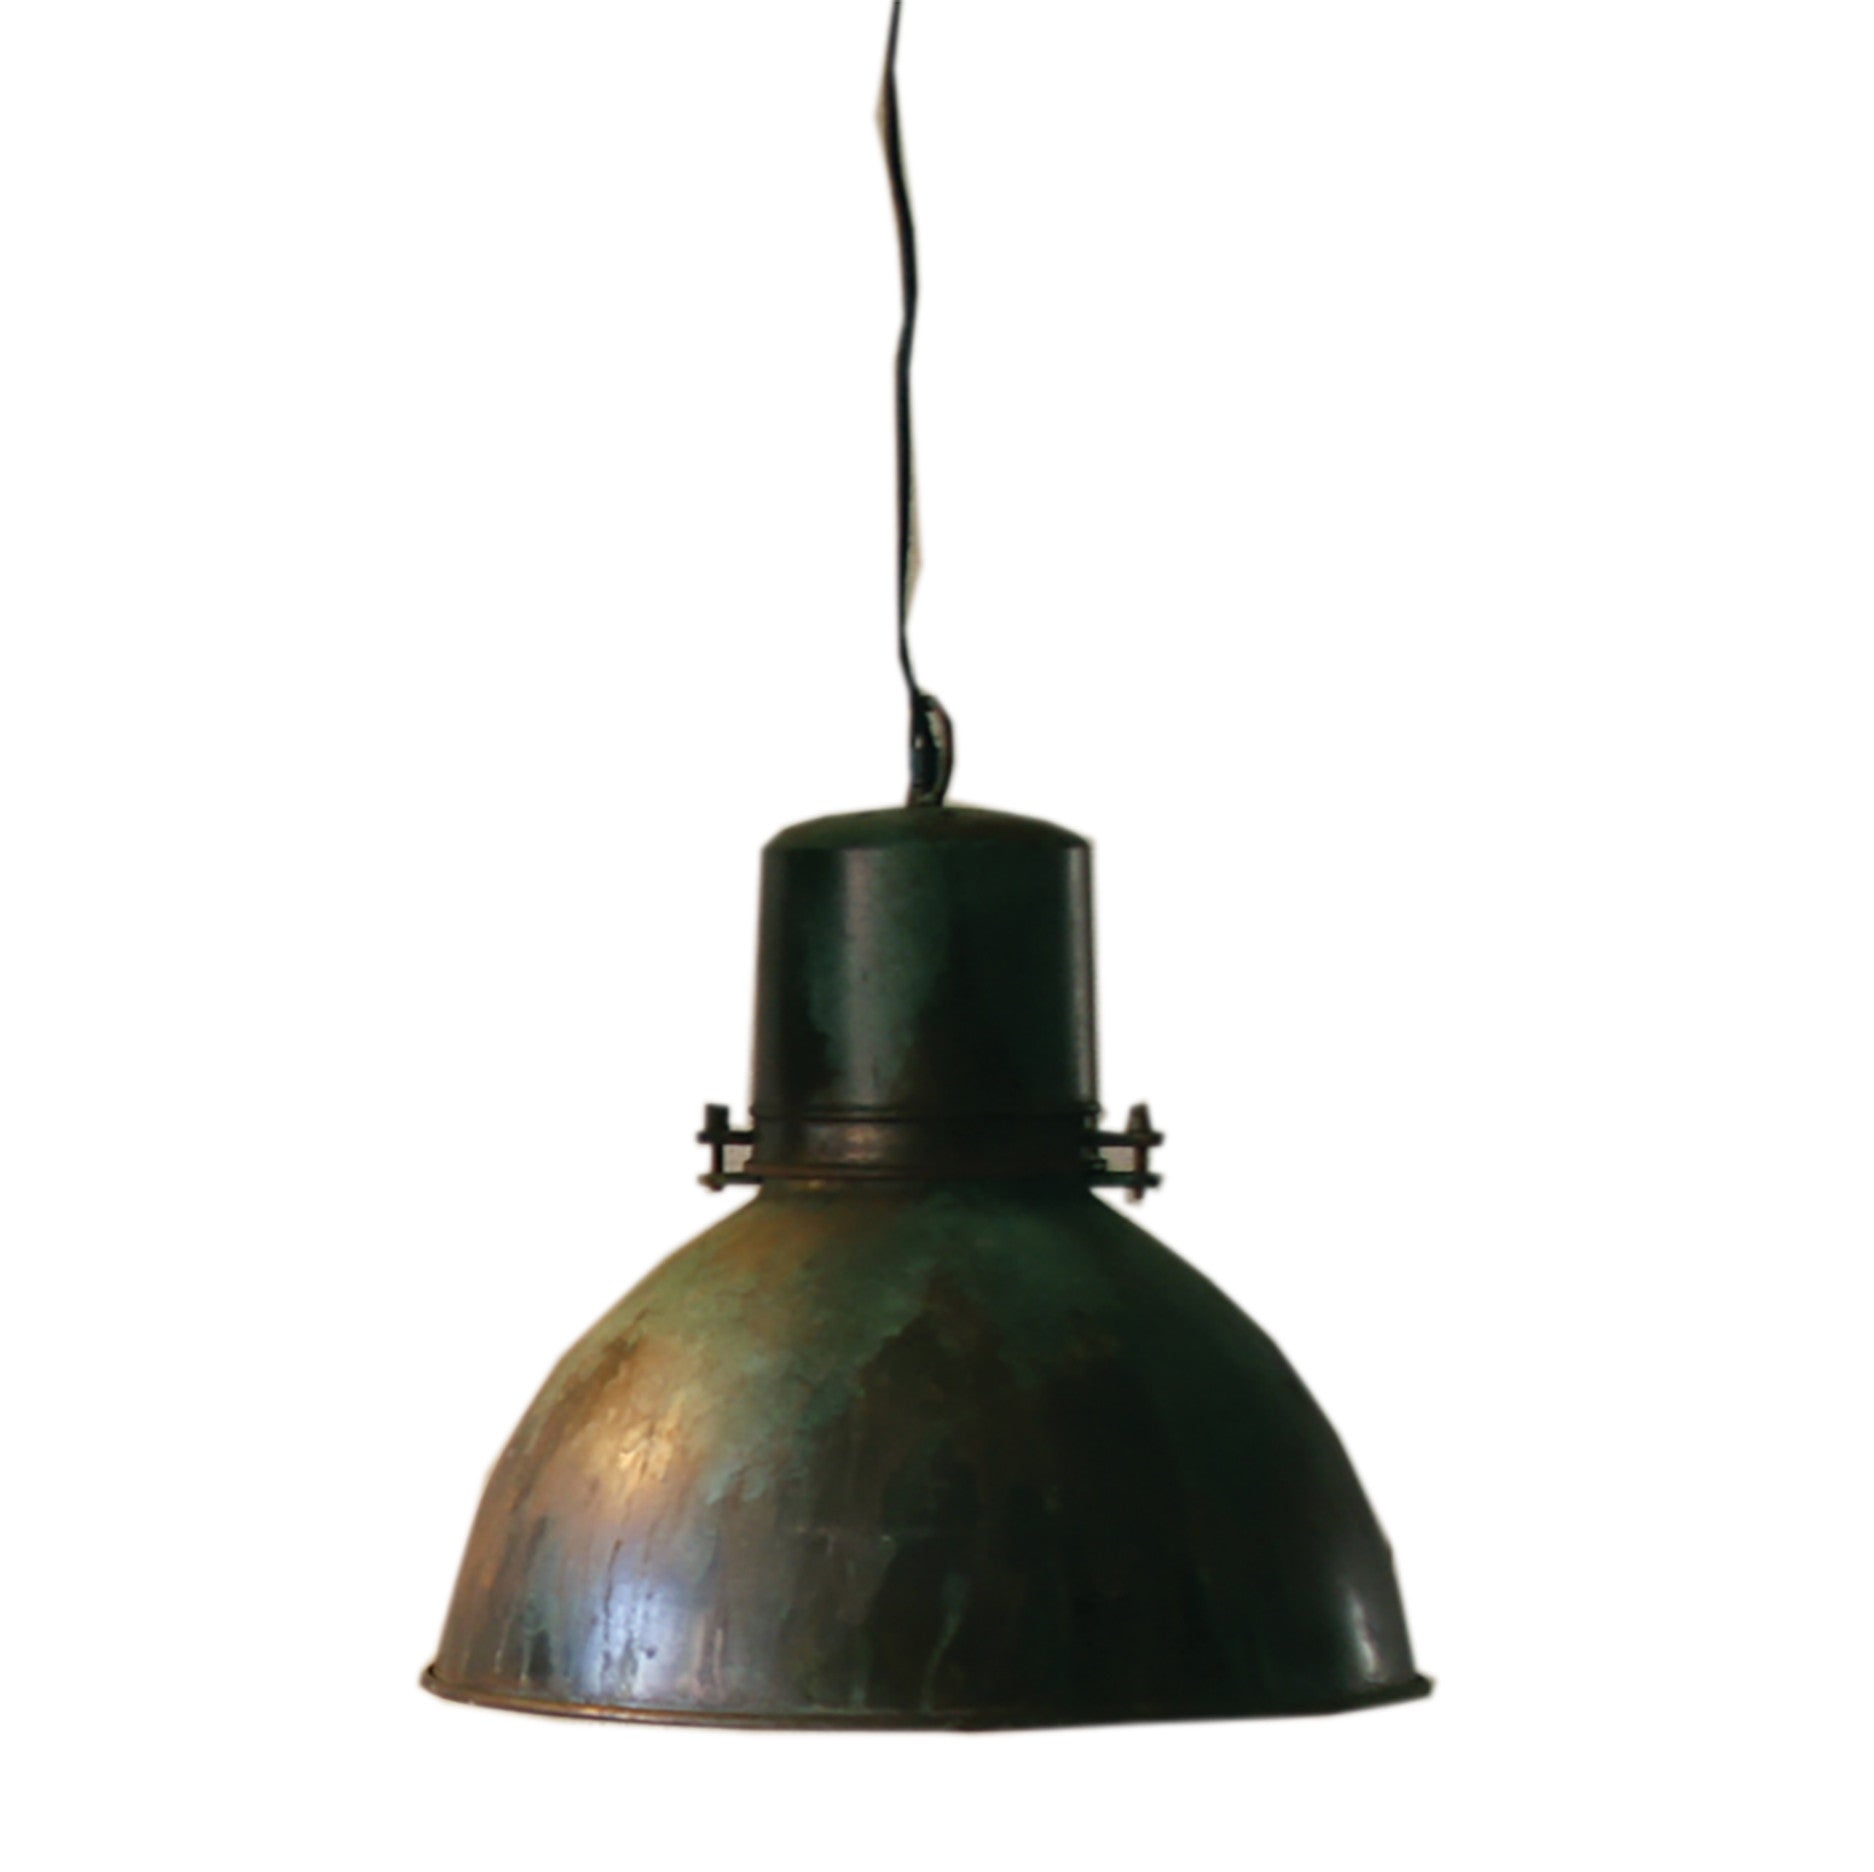 Industrial modern warehouse style pendant lamp with green patina industrial modern warehouse style pendant lamp with green patina aloadofball Image collections